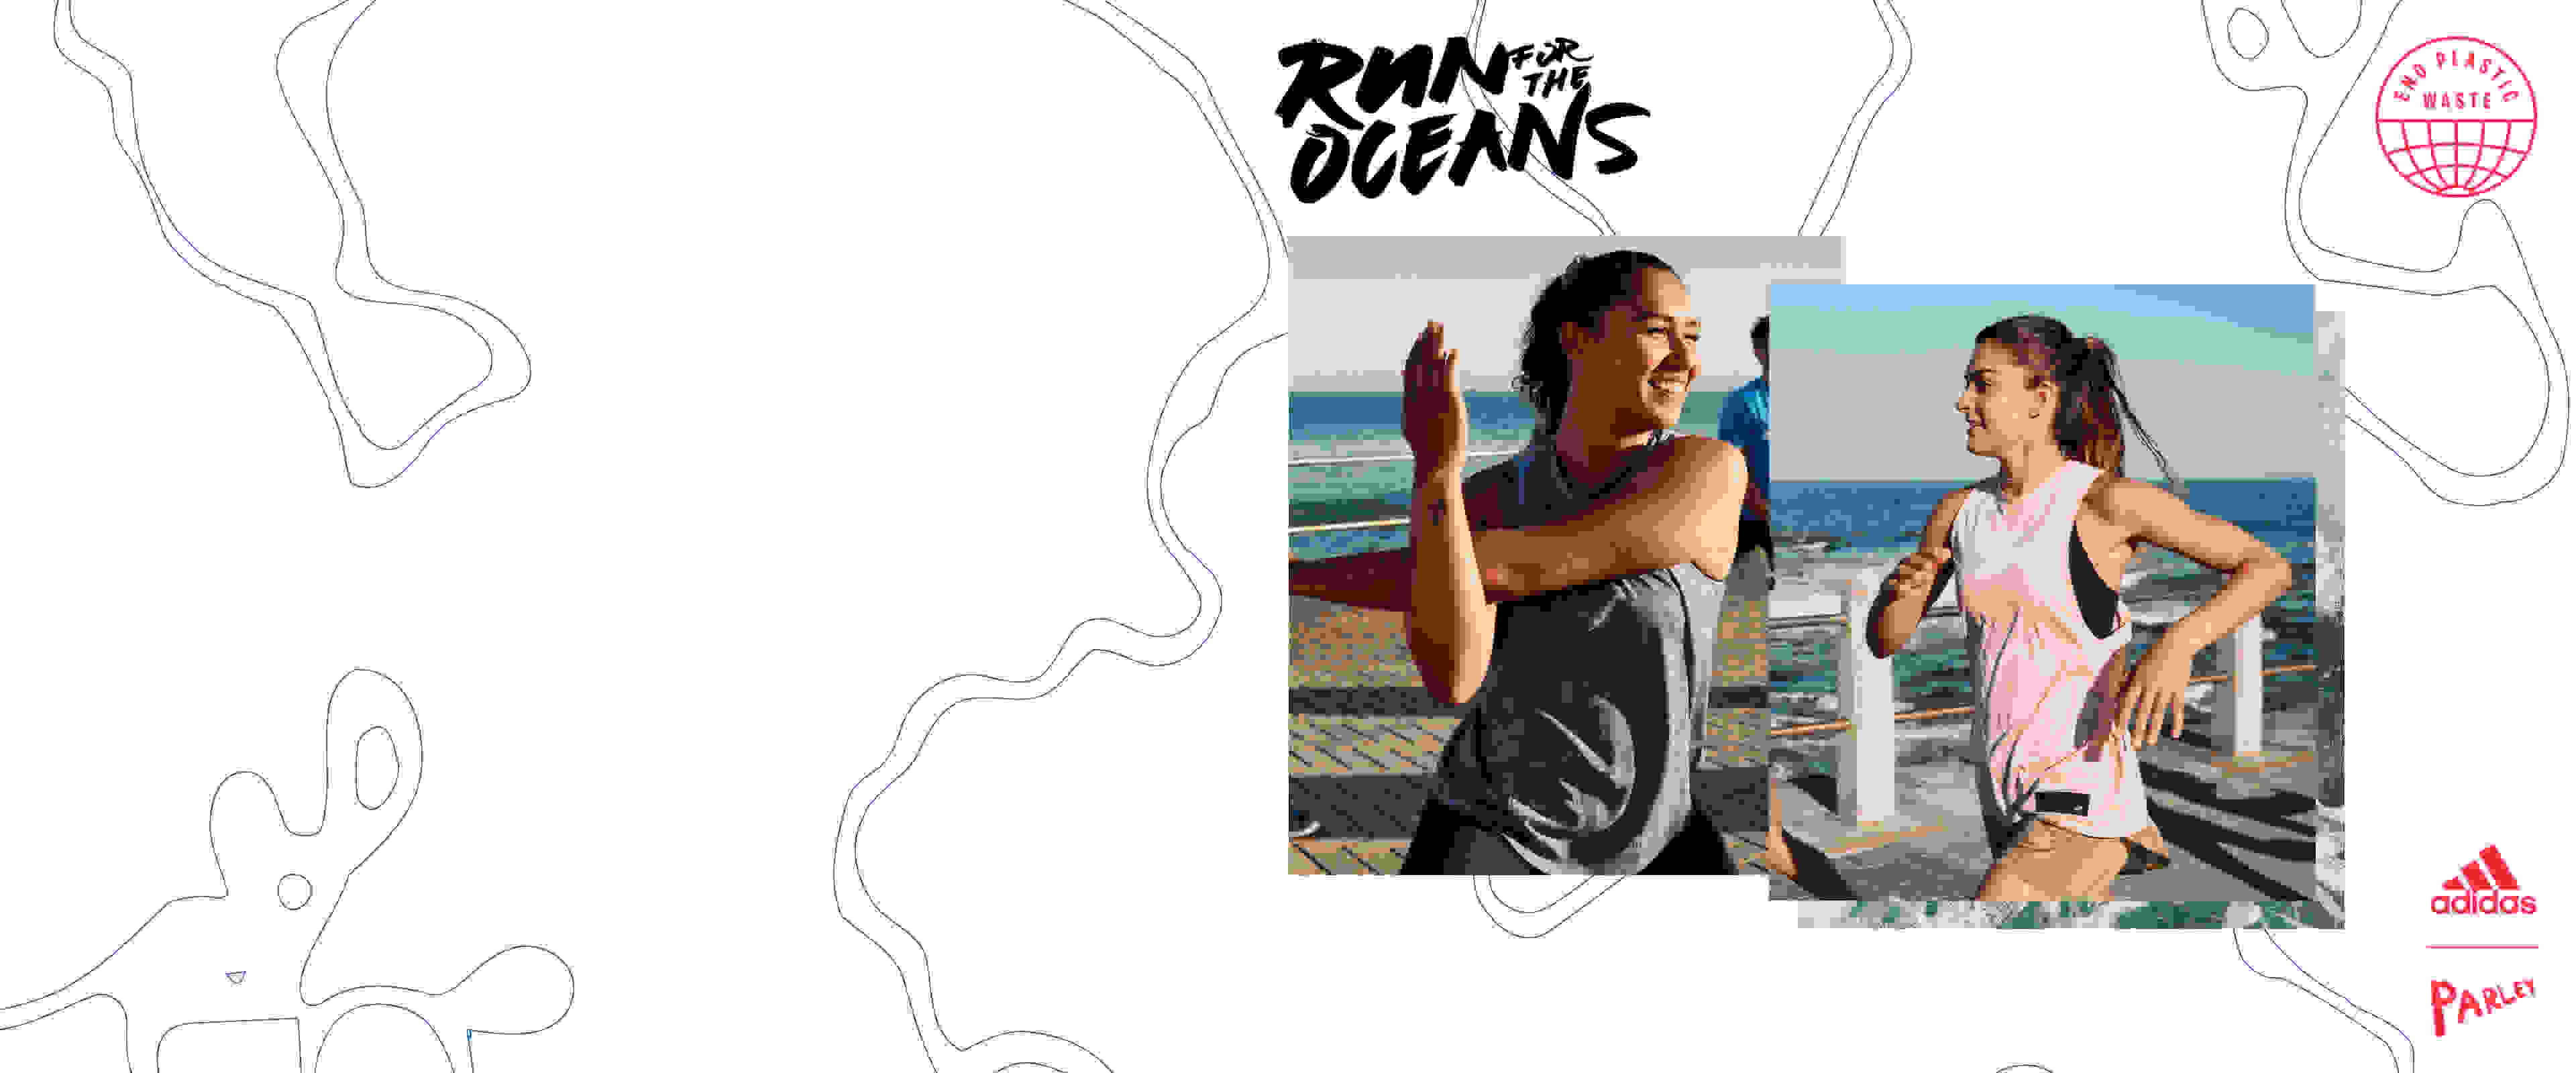 A woman are picking up plastic waste on the beach and another woman is downloading the adidas Running app to join Run For The Oceans